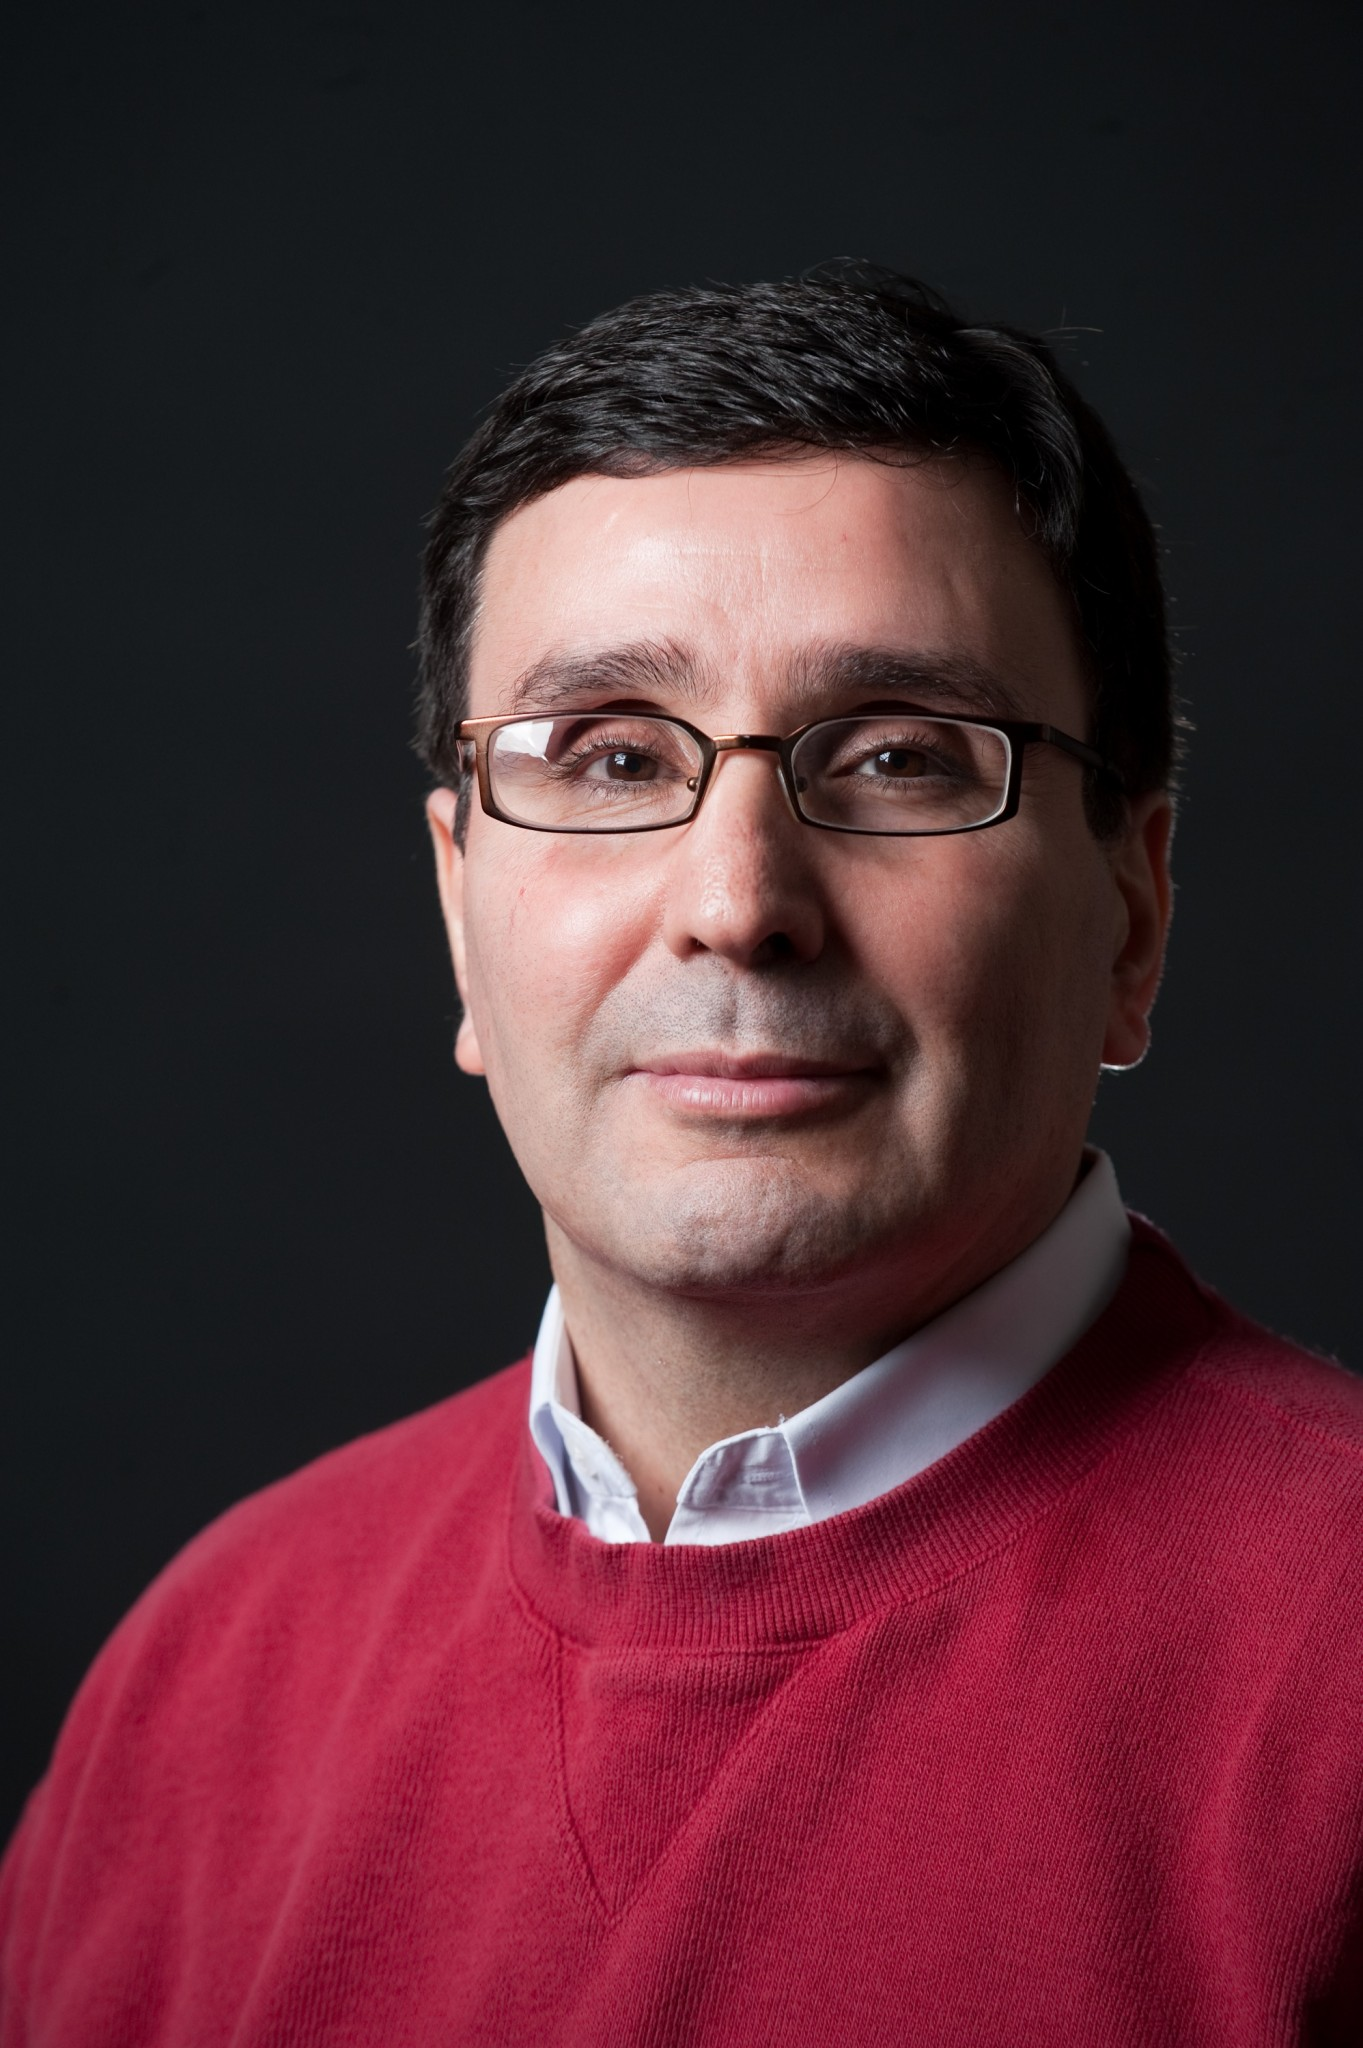 Professor Kamal Youcef-Toumi. Photo: Massachusetts Institute of Technology.